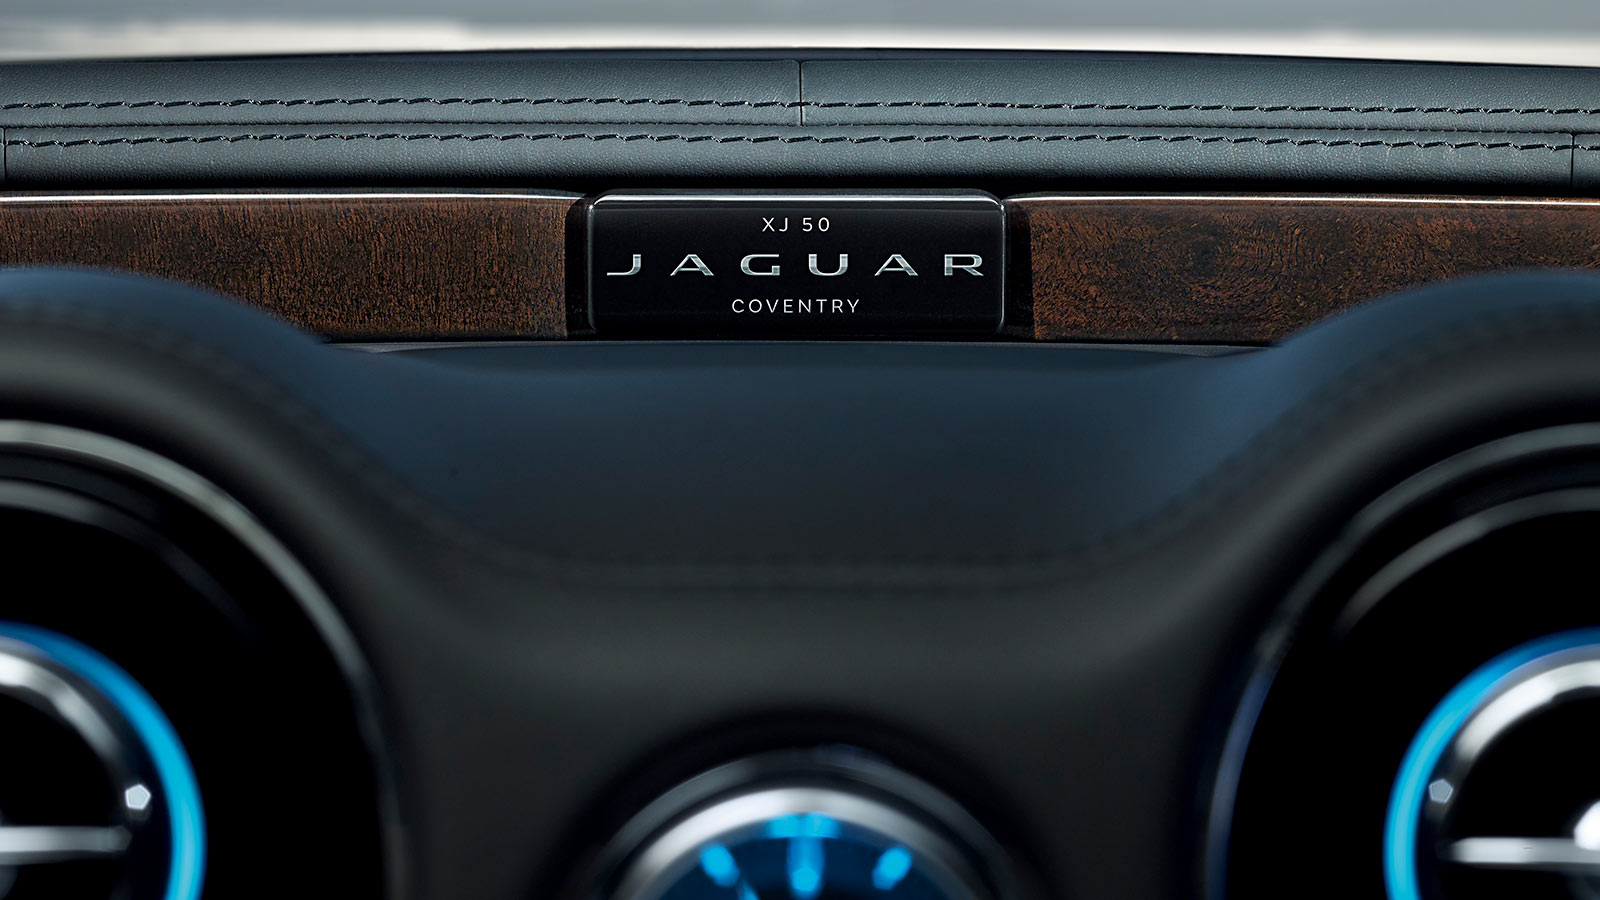 Jaguar XJ50 Dashboard Close Up.